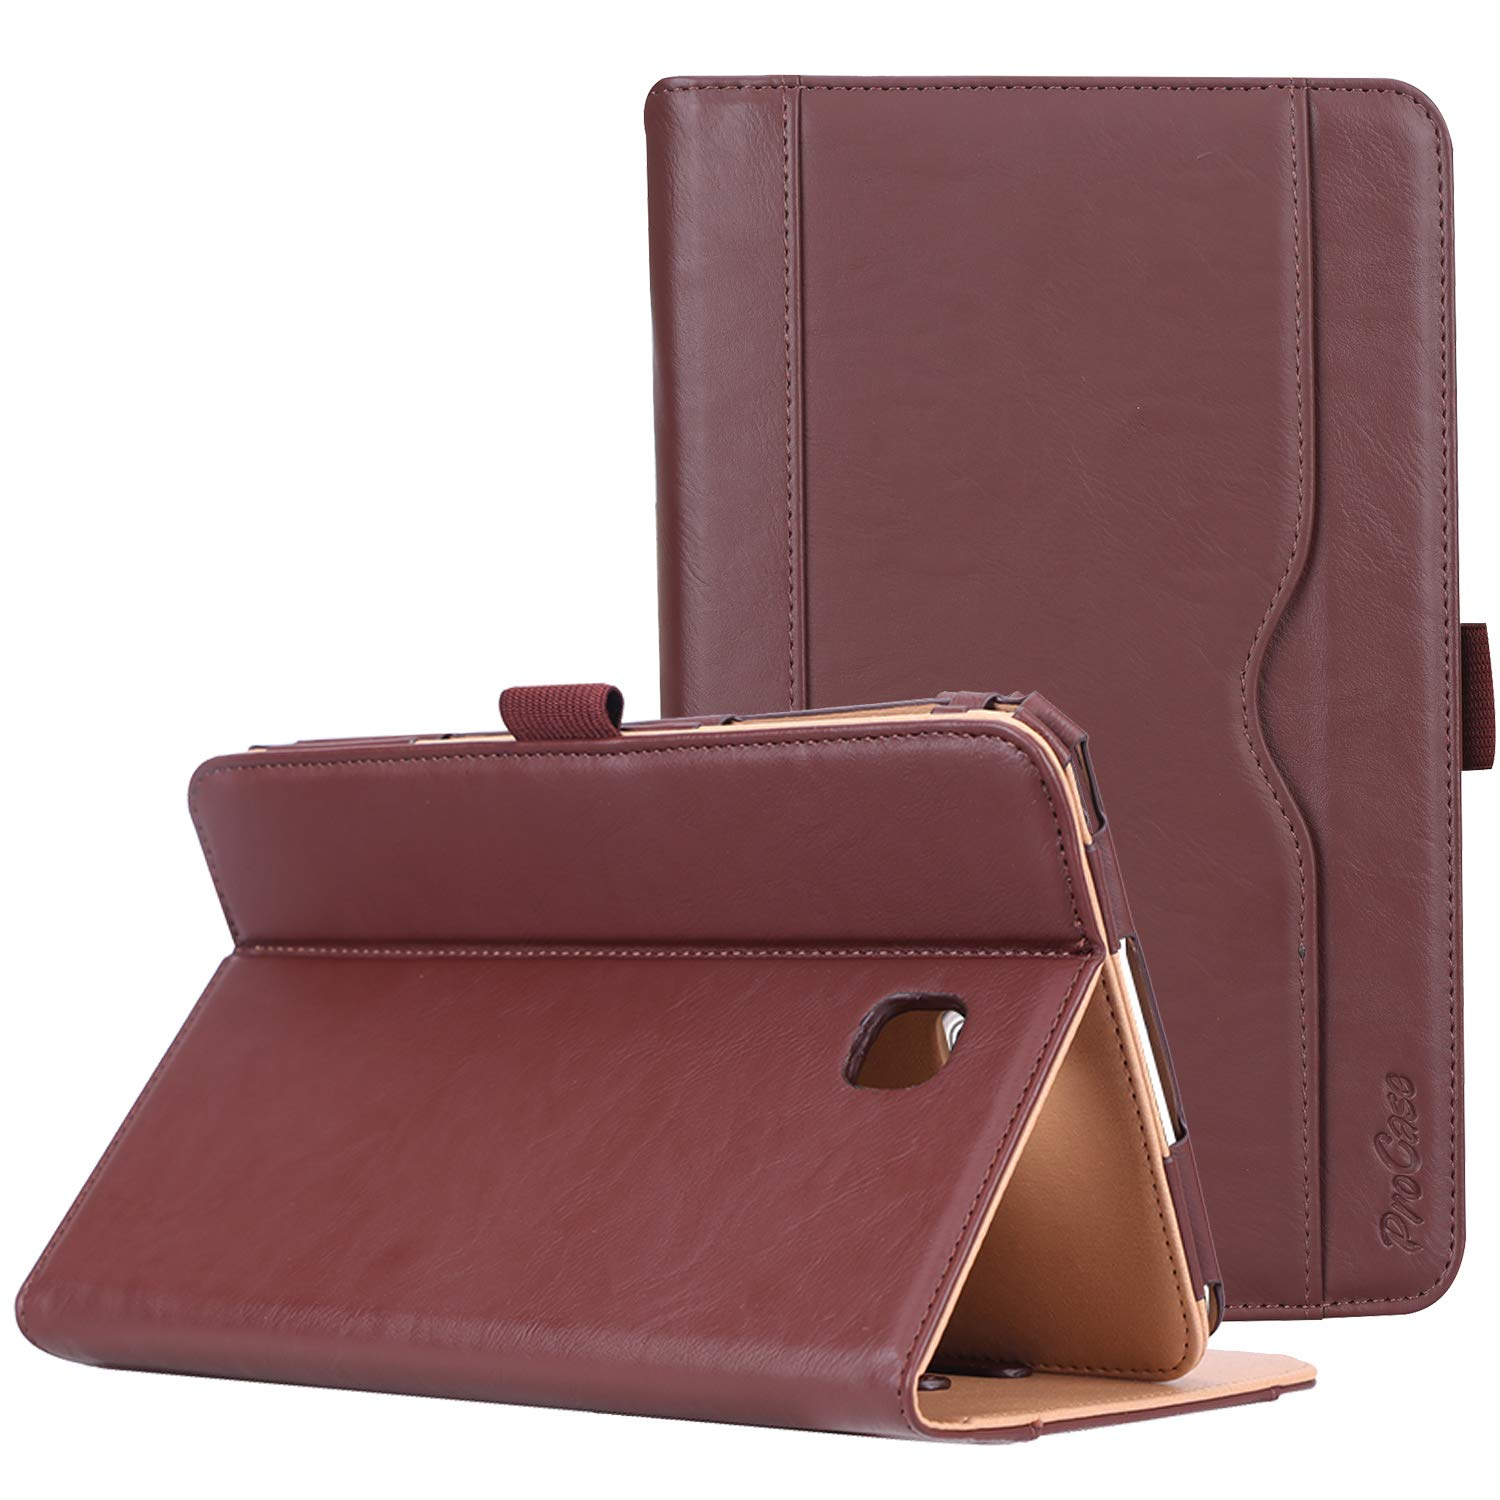 """ProCase Folio Case for Galaxy Tab A 8.0"""" 2018 Verizon Sprint SM-T387, Stand Case Cover for Galaxy Tab A 8.0 4G LTE Verizon/Sprint/T-Mobile/AT&T 2018 Release -Brown"""